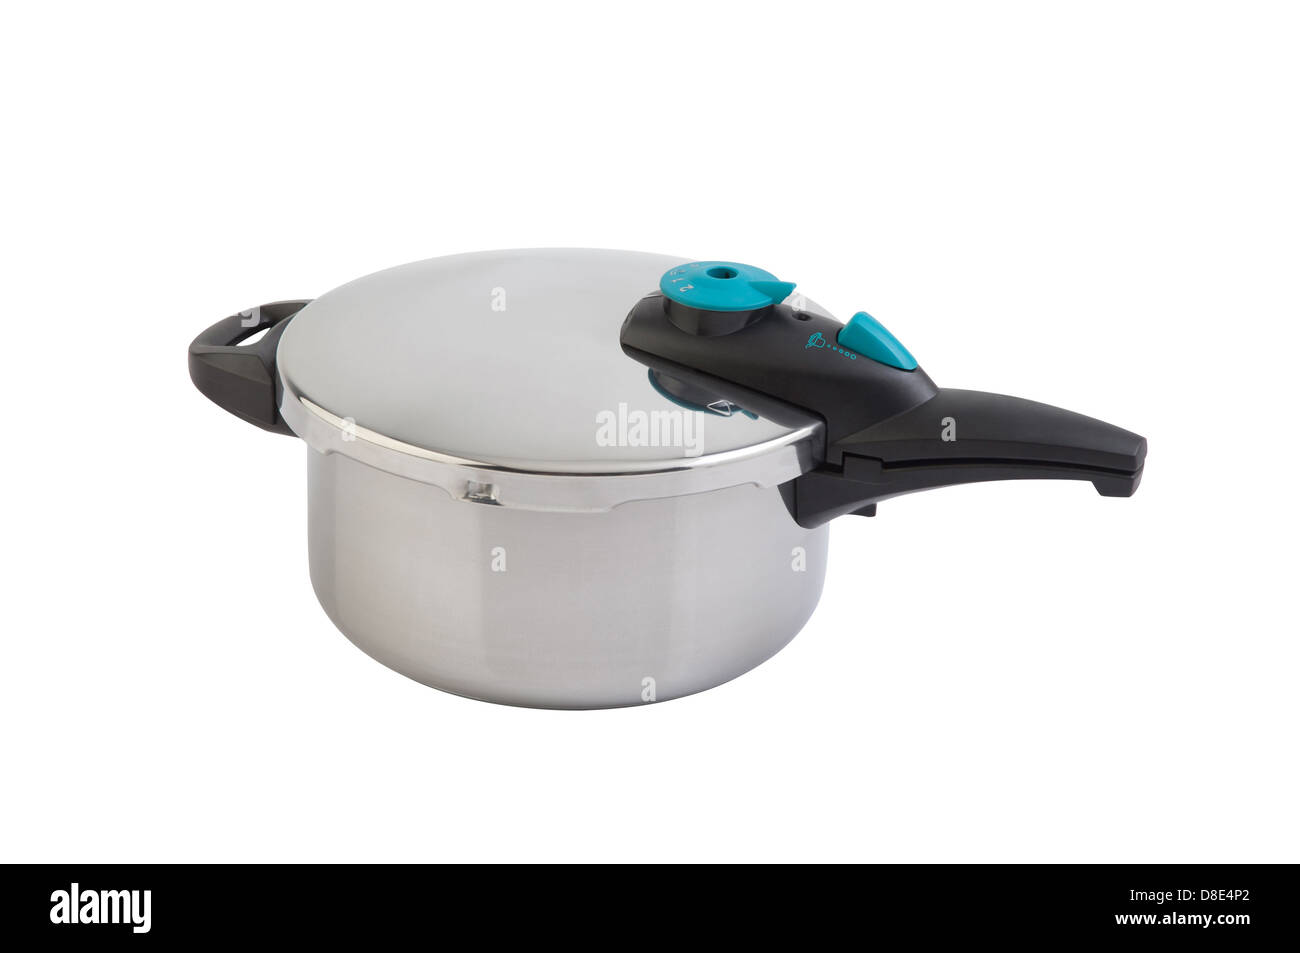 High pressure aluminum cooking pot with safety cover - Stock Image